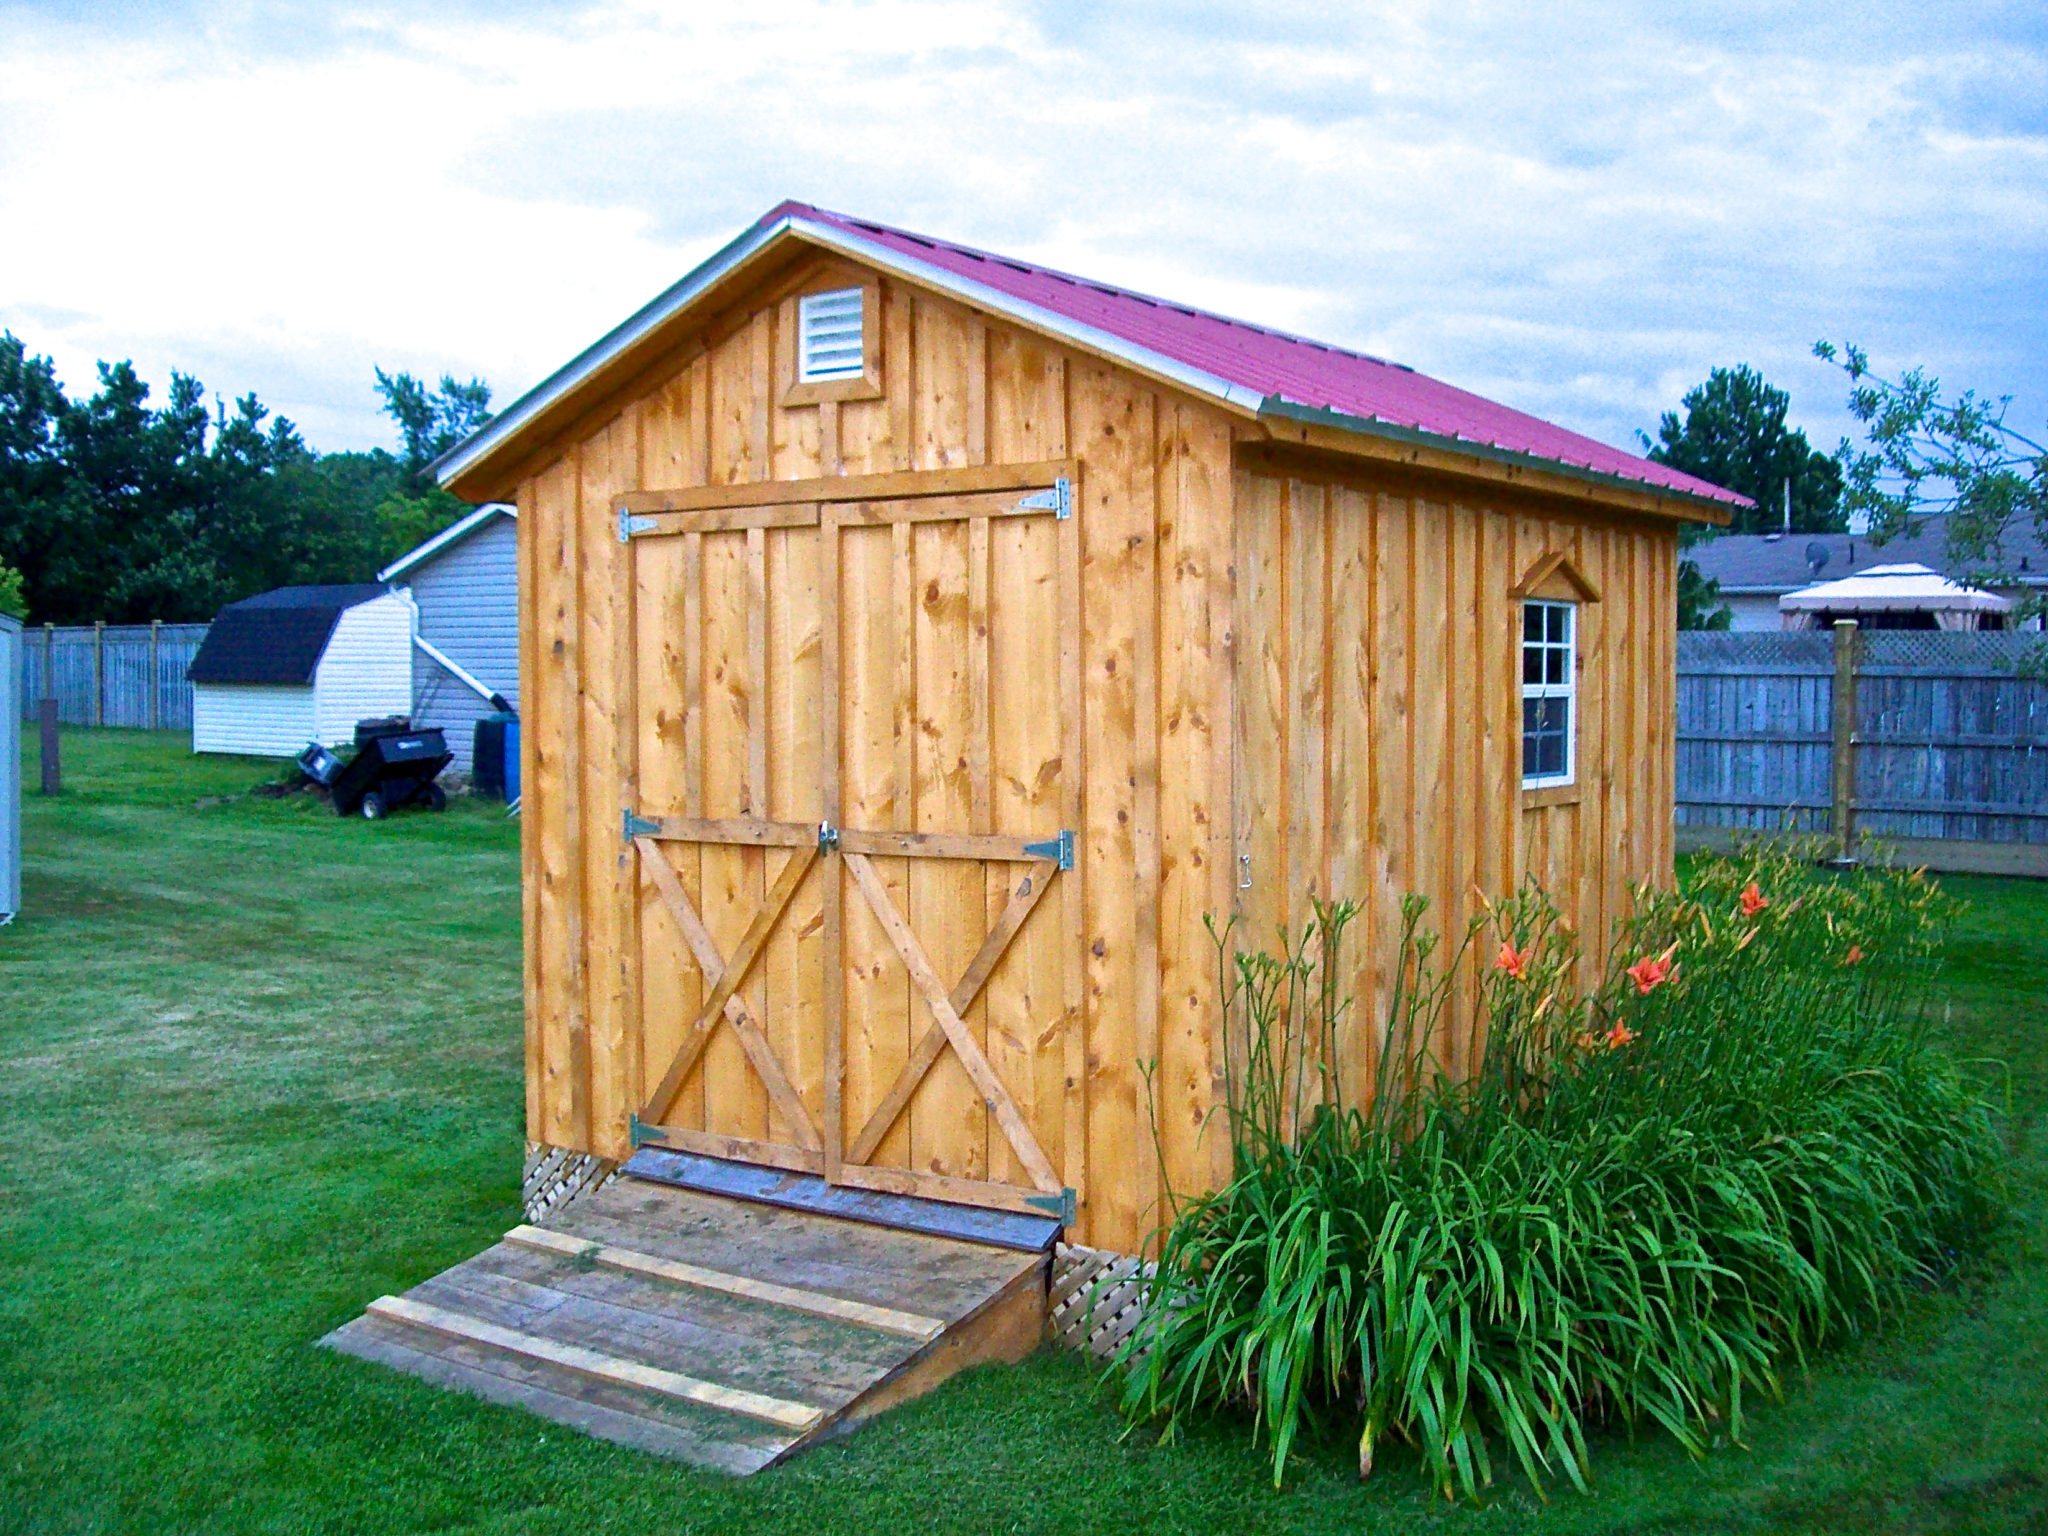 Amish Shed With Double Doors & Red Roof